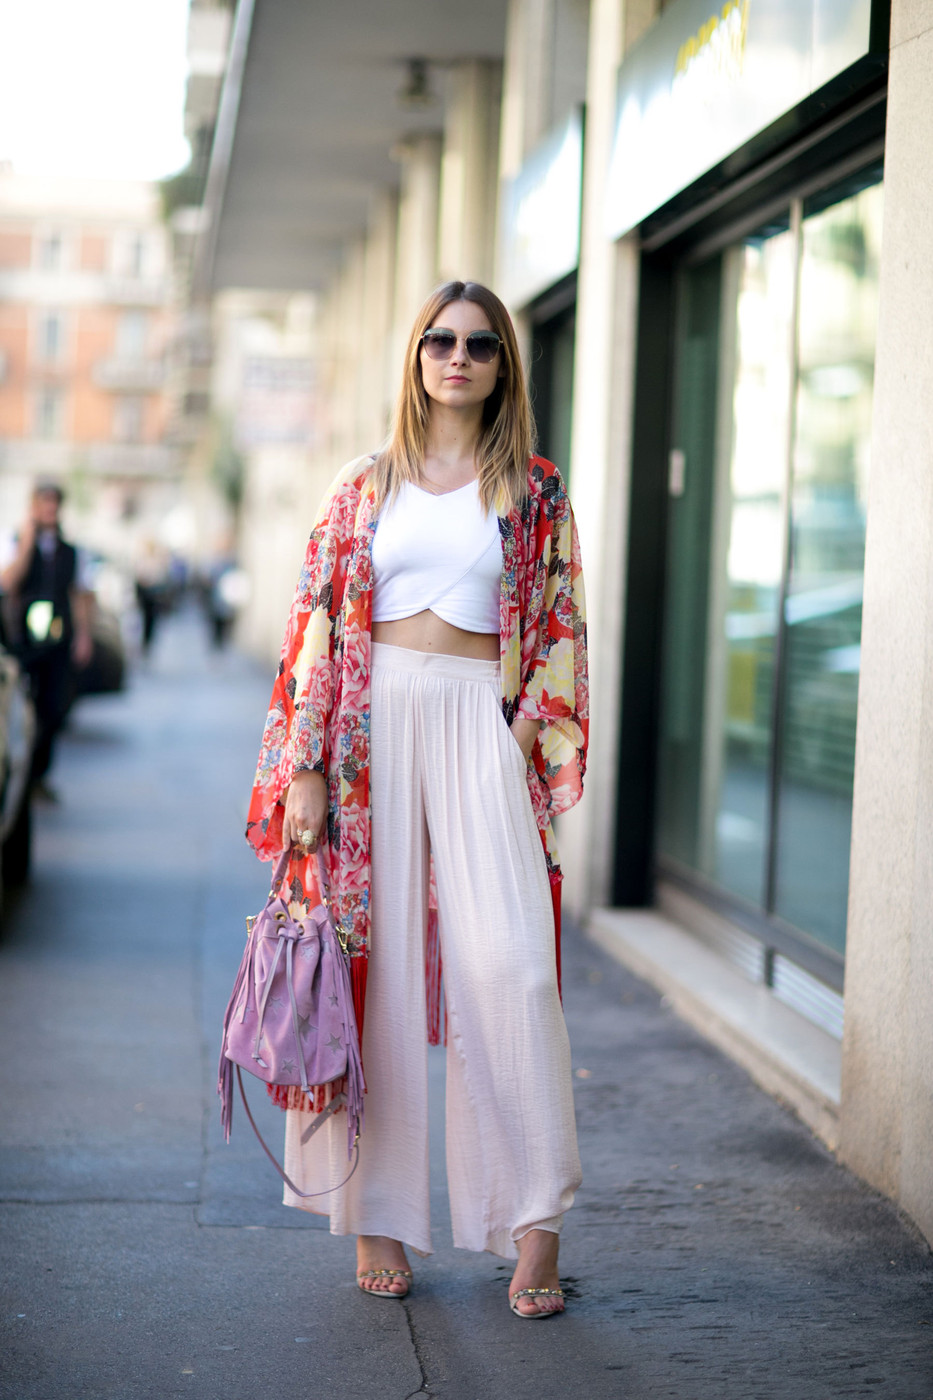 Kimono Cool The Best Street Style At Milan Fashion Week